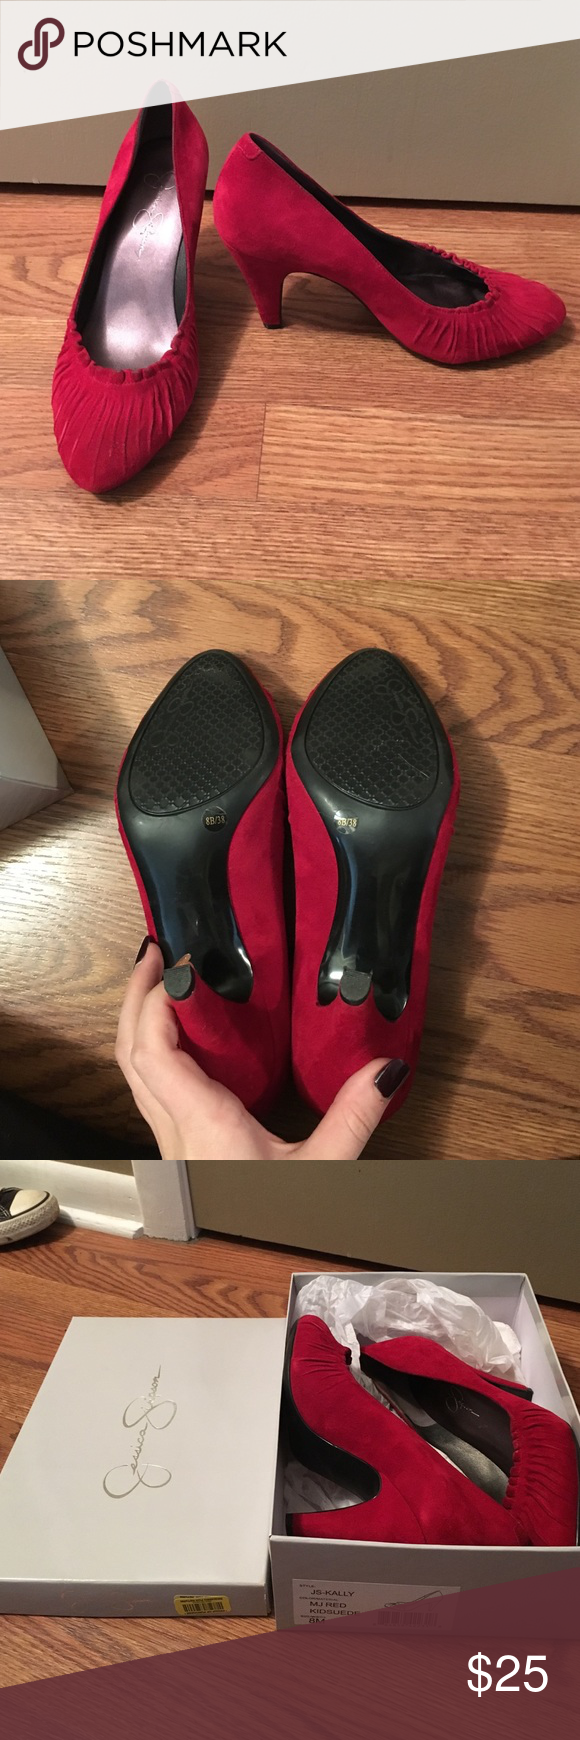 RED JESSICA SIMPSON HEELS NWOT Jessica Simpson heels! Very classy. Perfect for a Valentine's Day outfit! Never worn, but I took the tags off. They are still in the box Jessica Simpson Shoes Heels